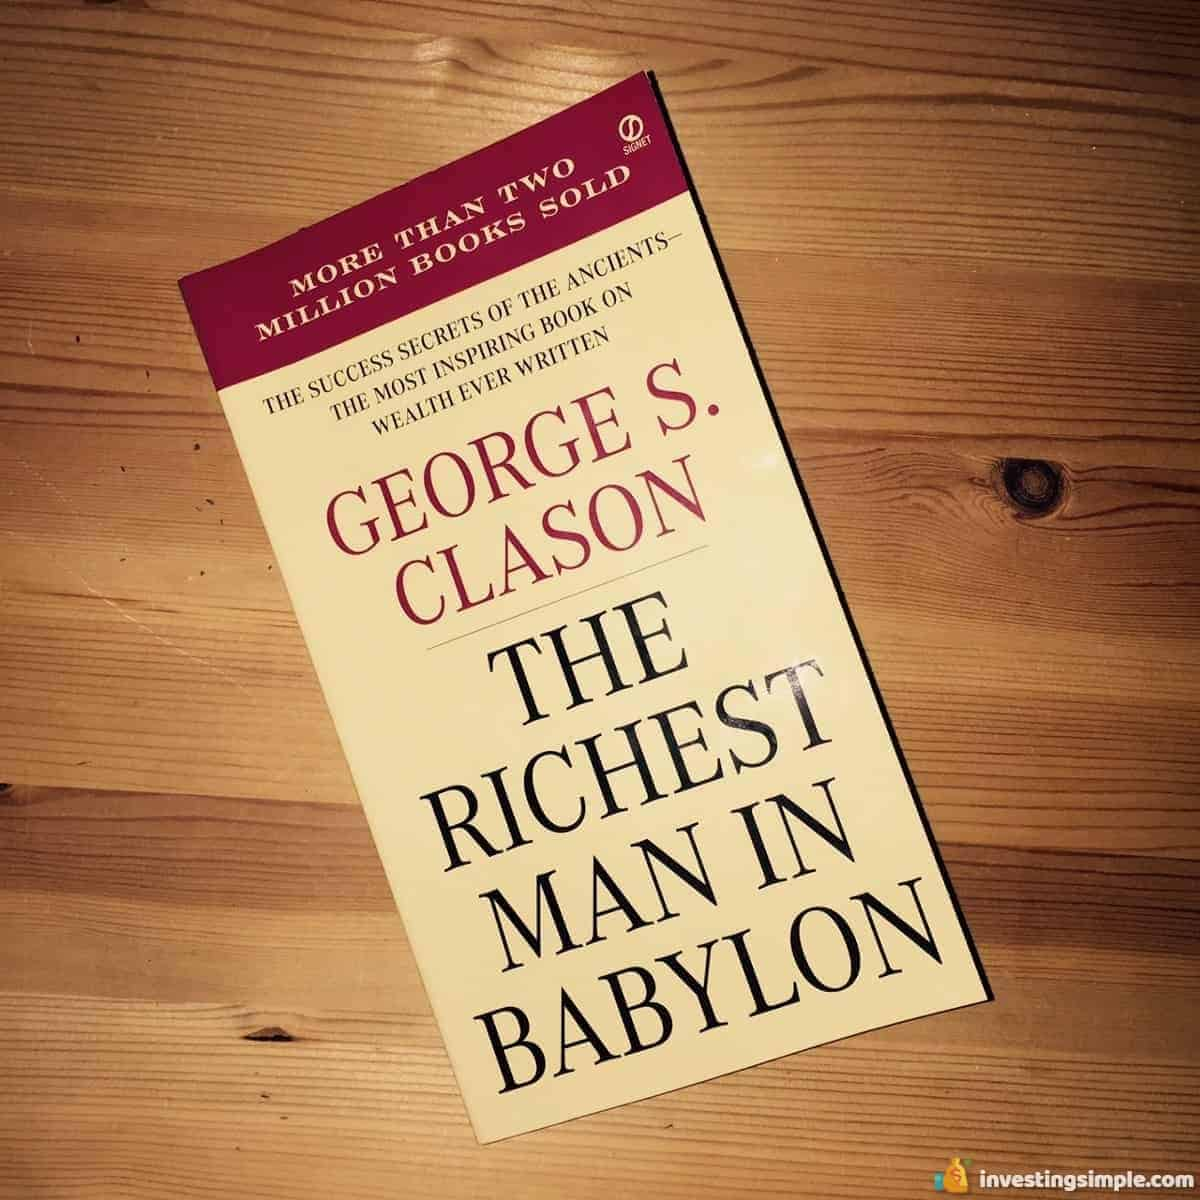 One of the best books on saving money is The Richest Man In Babylon.